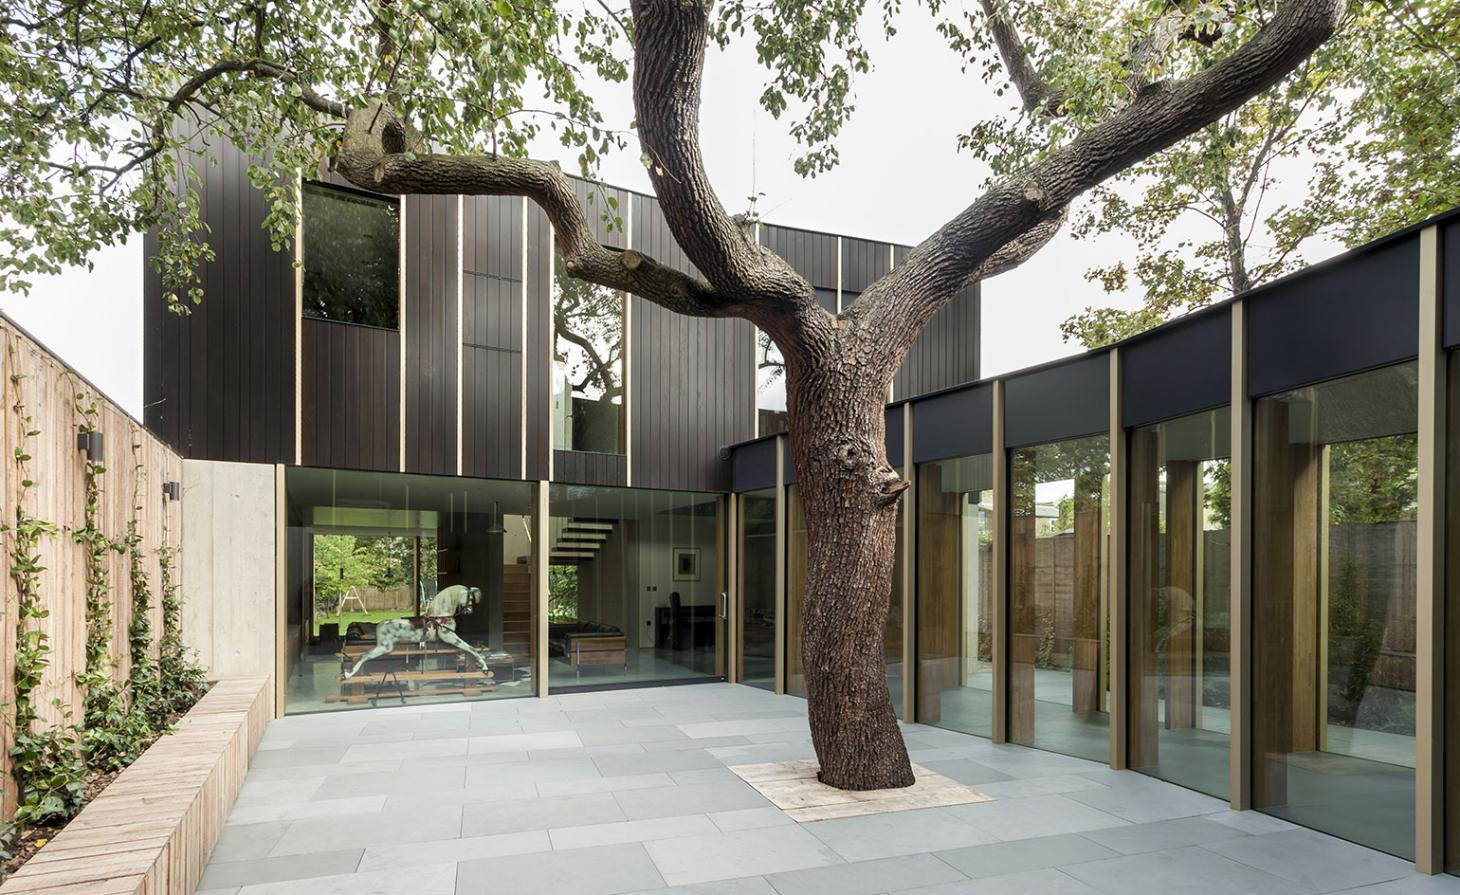 Fruits of one's labour: Edgley Design's Pear Tree House, Dulwich